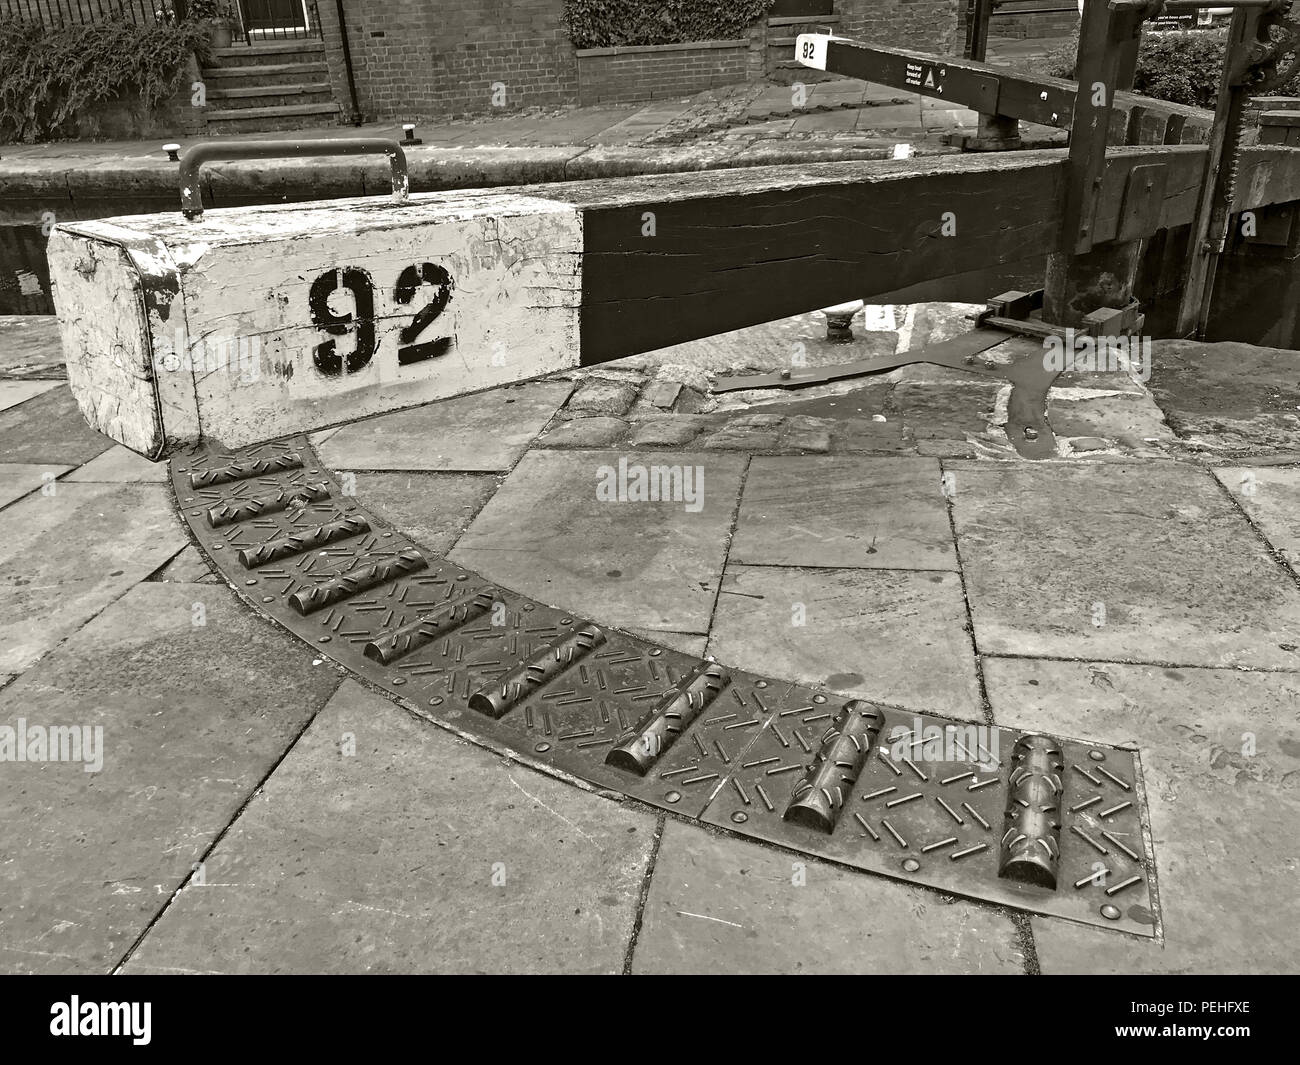 Lock 92, Rochdale Canal, Castlefield, Manchester, North West England, UK, M3 4LZ in Black & White - Stock Image